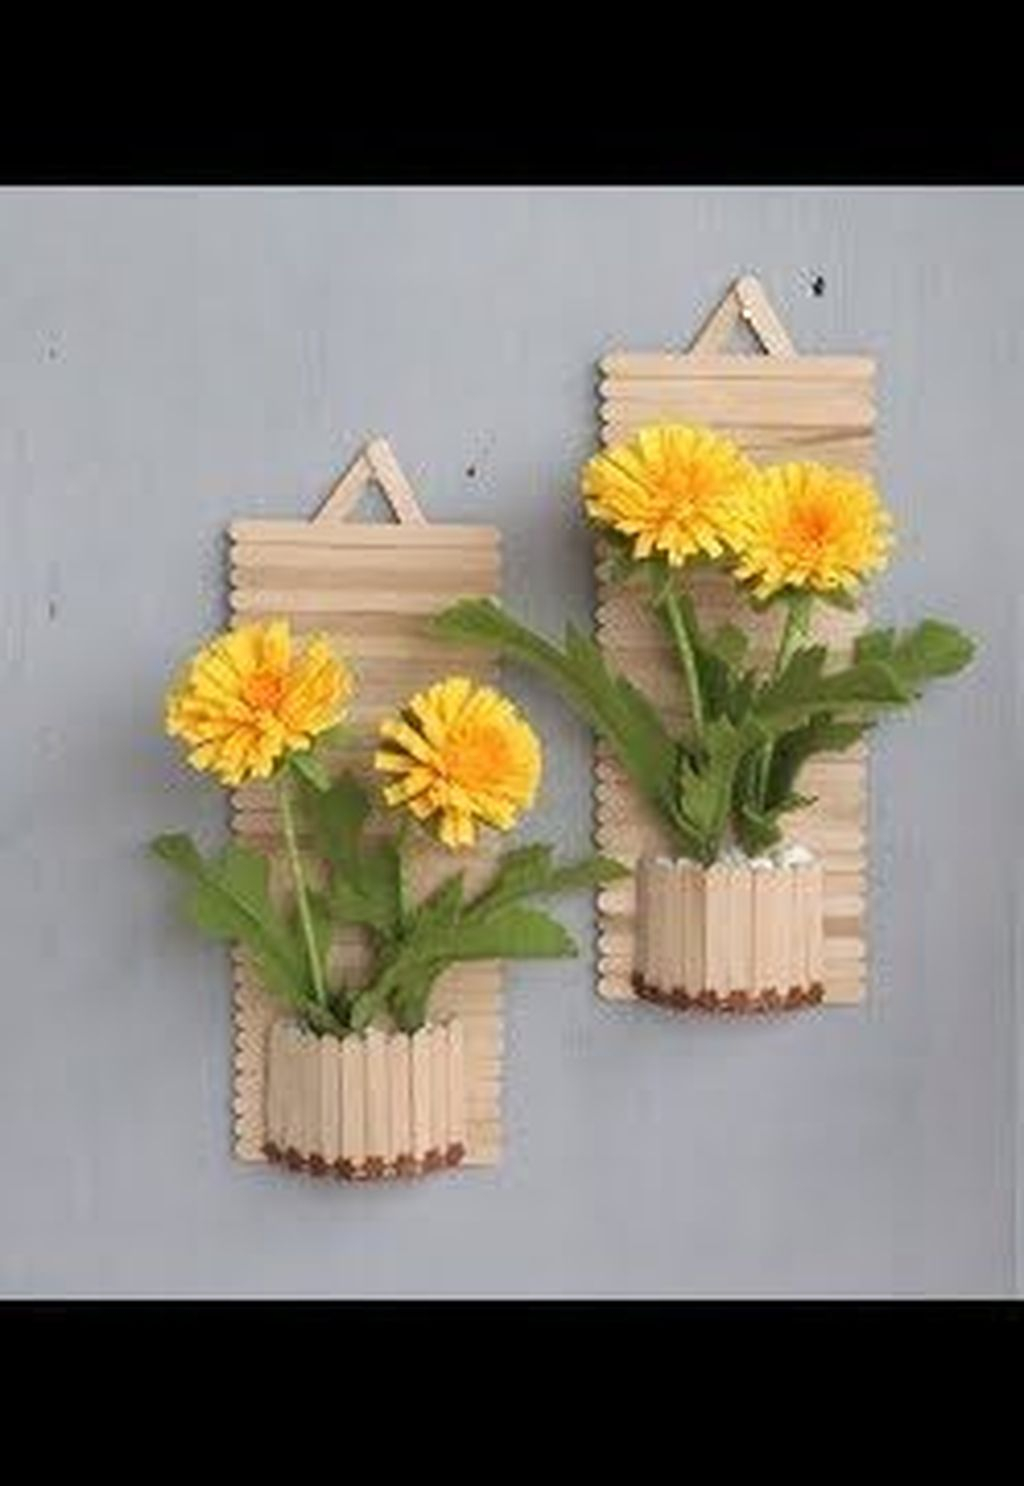 34 Gorgeous Diy Popsicle Stick Design Ideas For Home To Try Asap